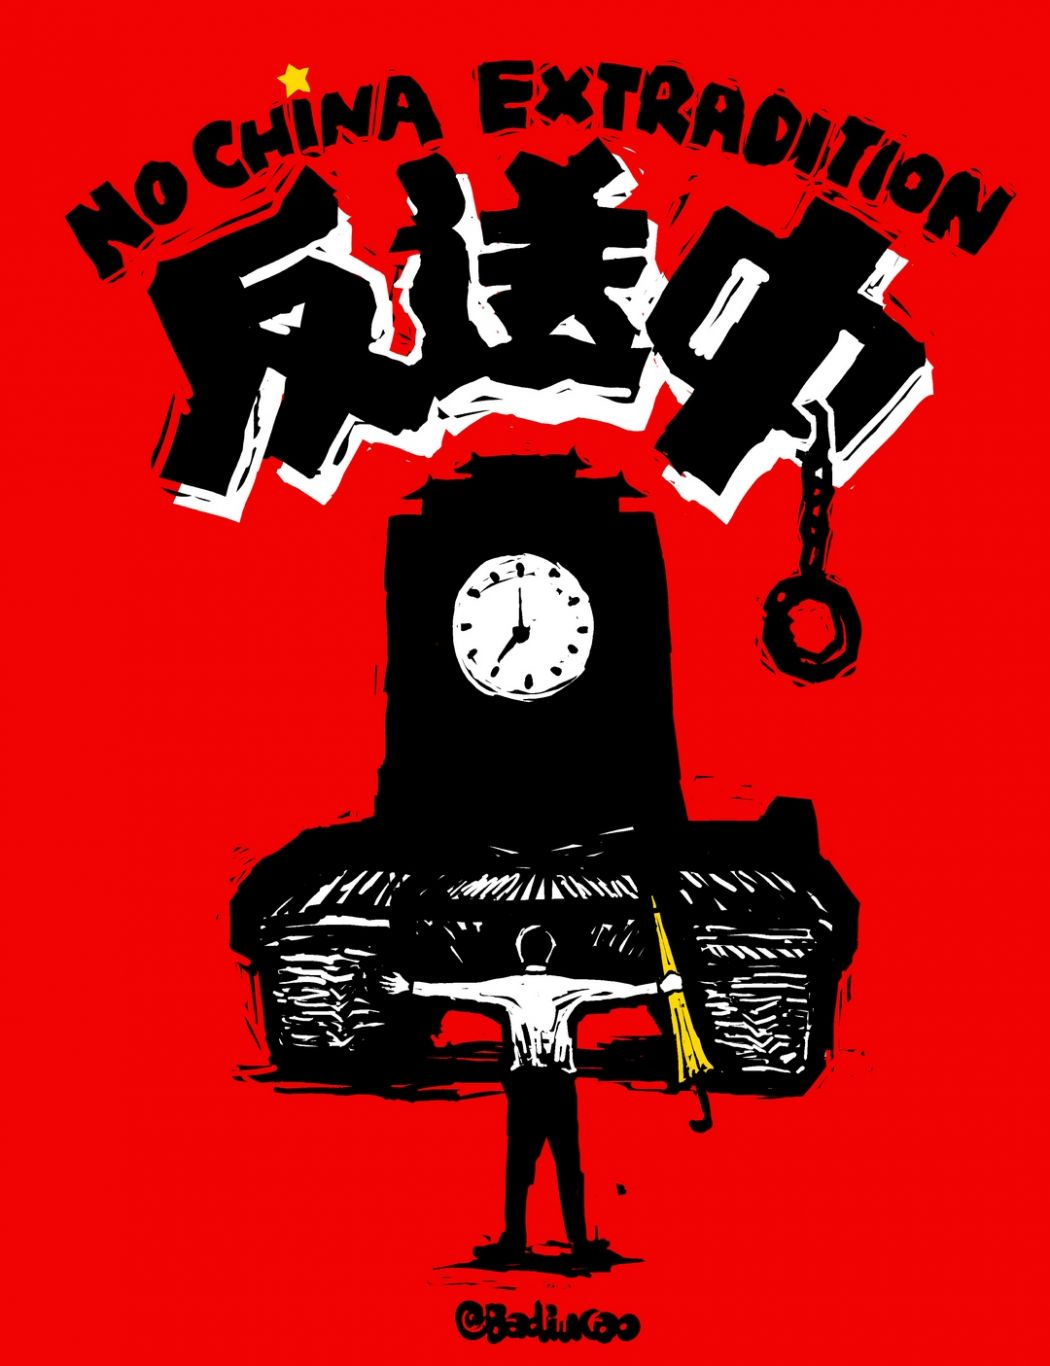 badiucao hong kong extradition poster